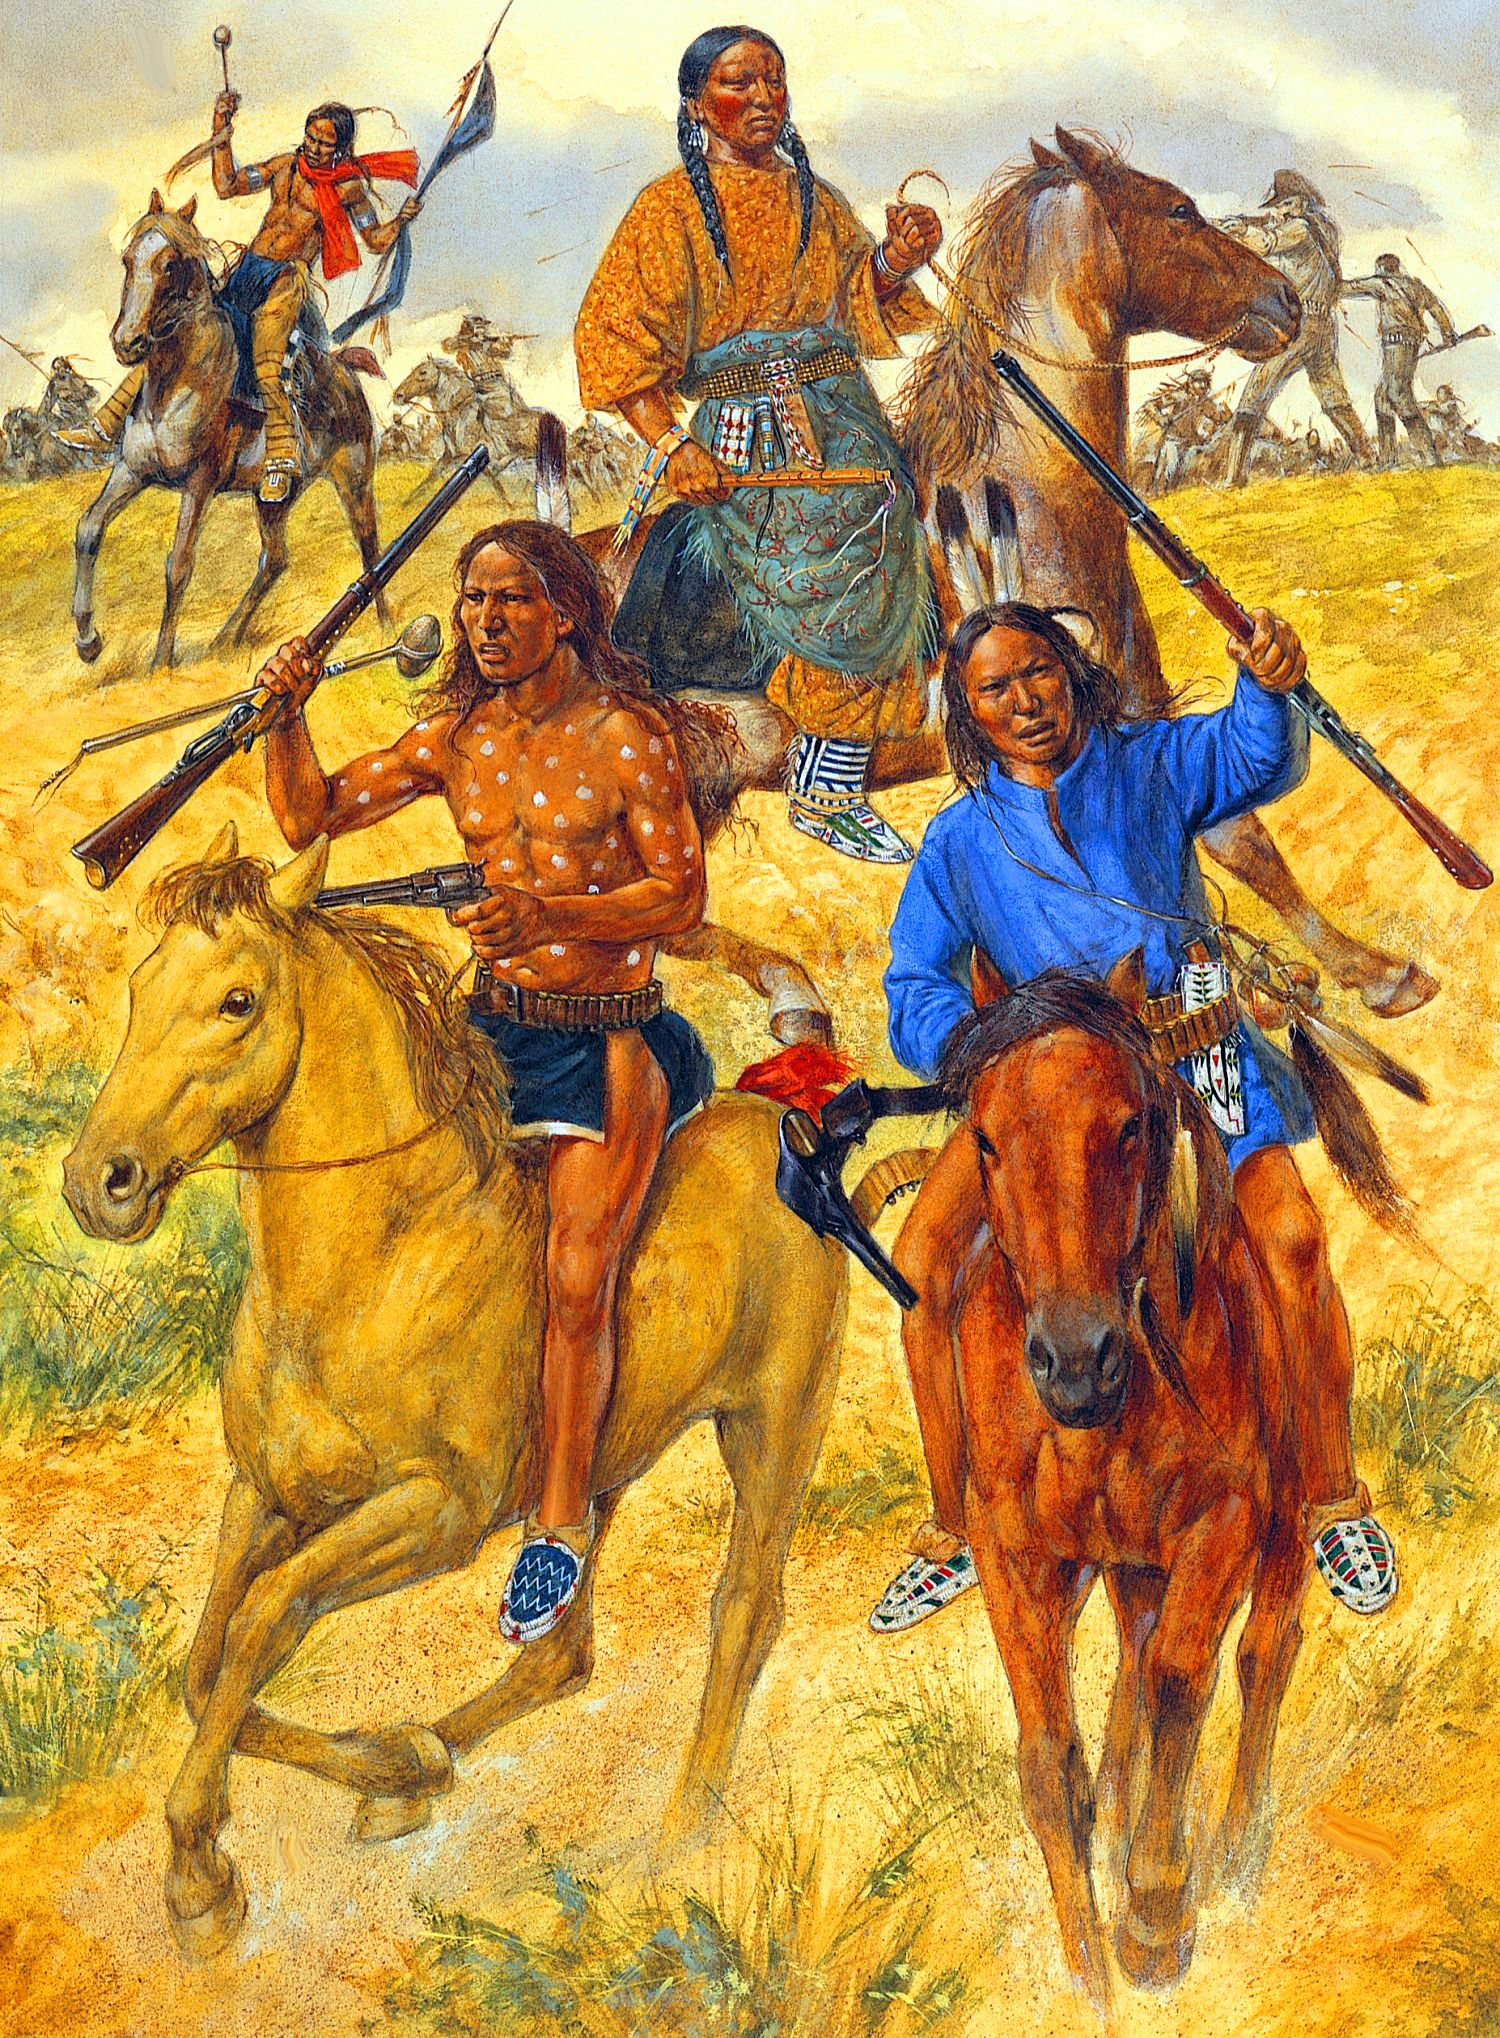 the details about the battle of little big horn Few men killed themselves during the battle of the little bighorn, skeletal data  suggest by bruce bower 4:31pm, april 13, 2018 share article email email.